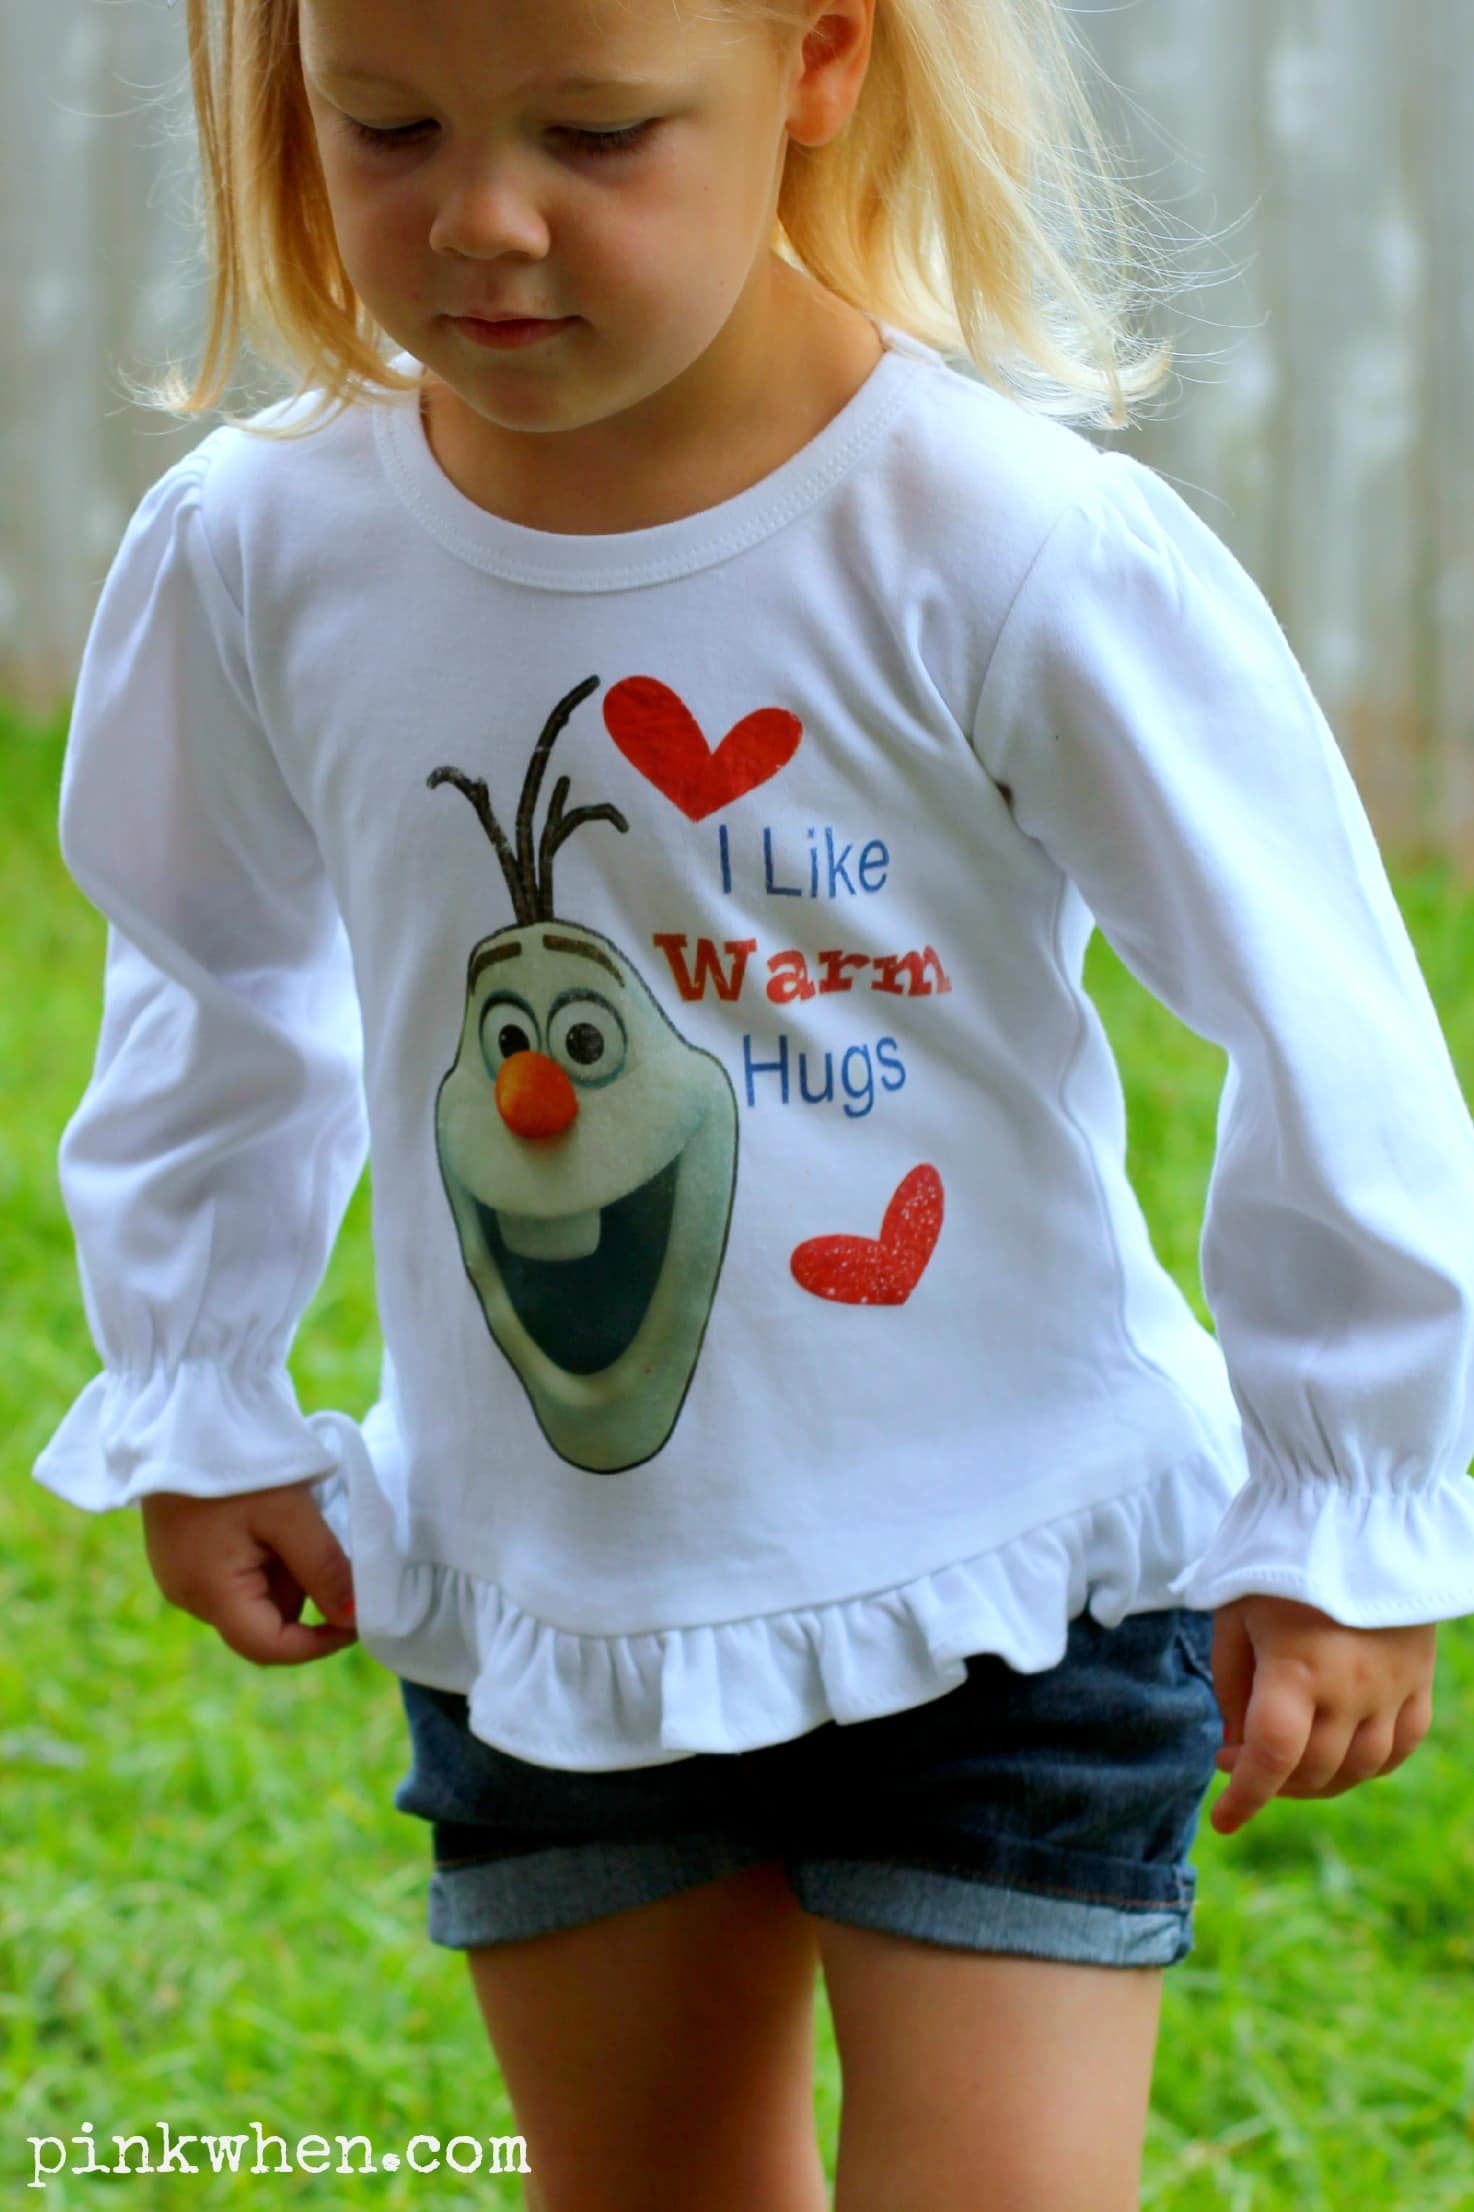 DIY Frozen Olaf Shirt via PinkWhen.com